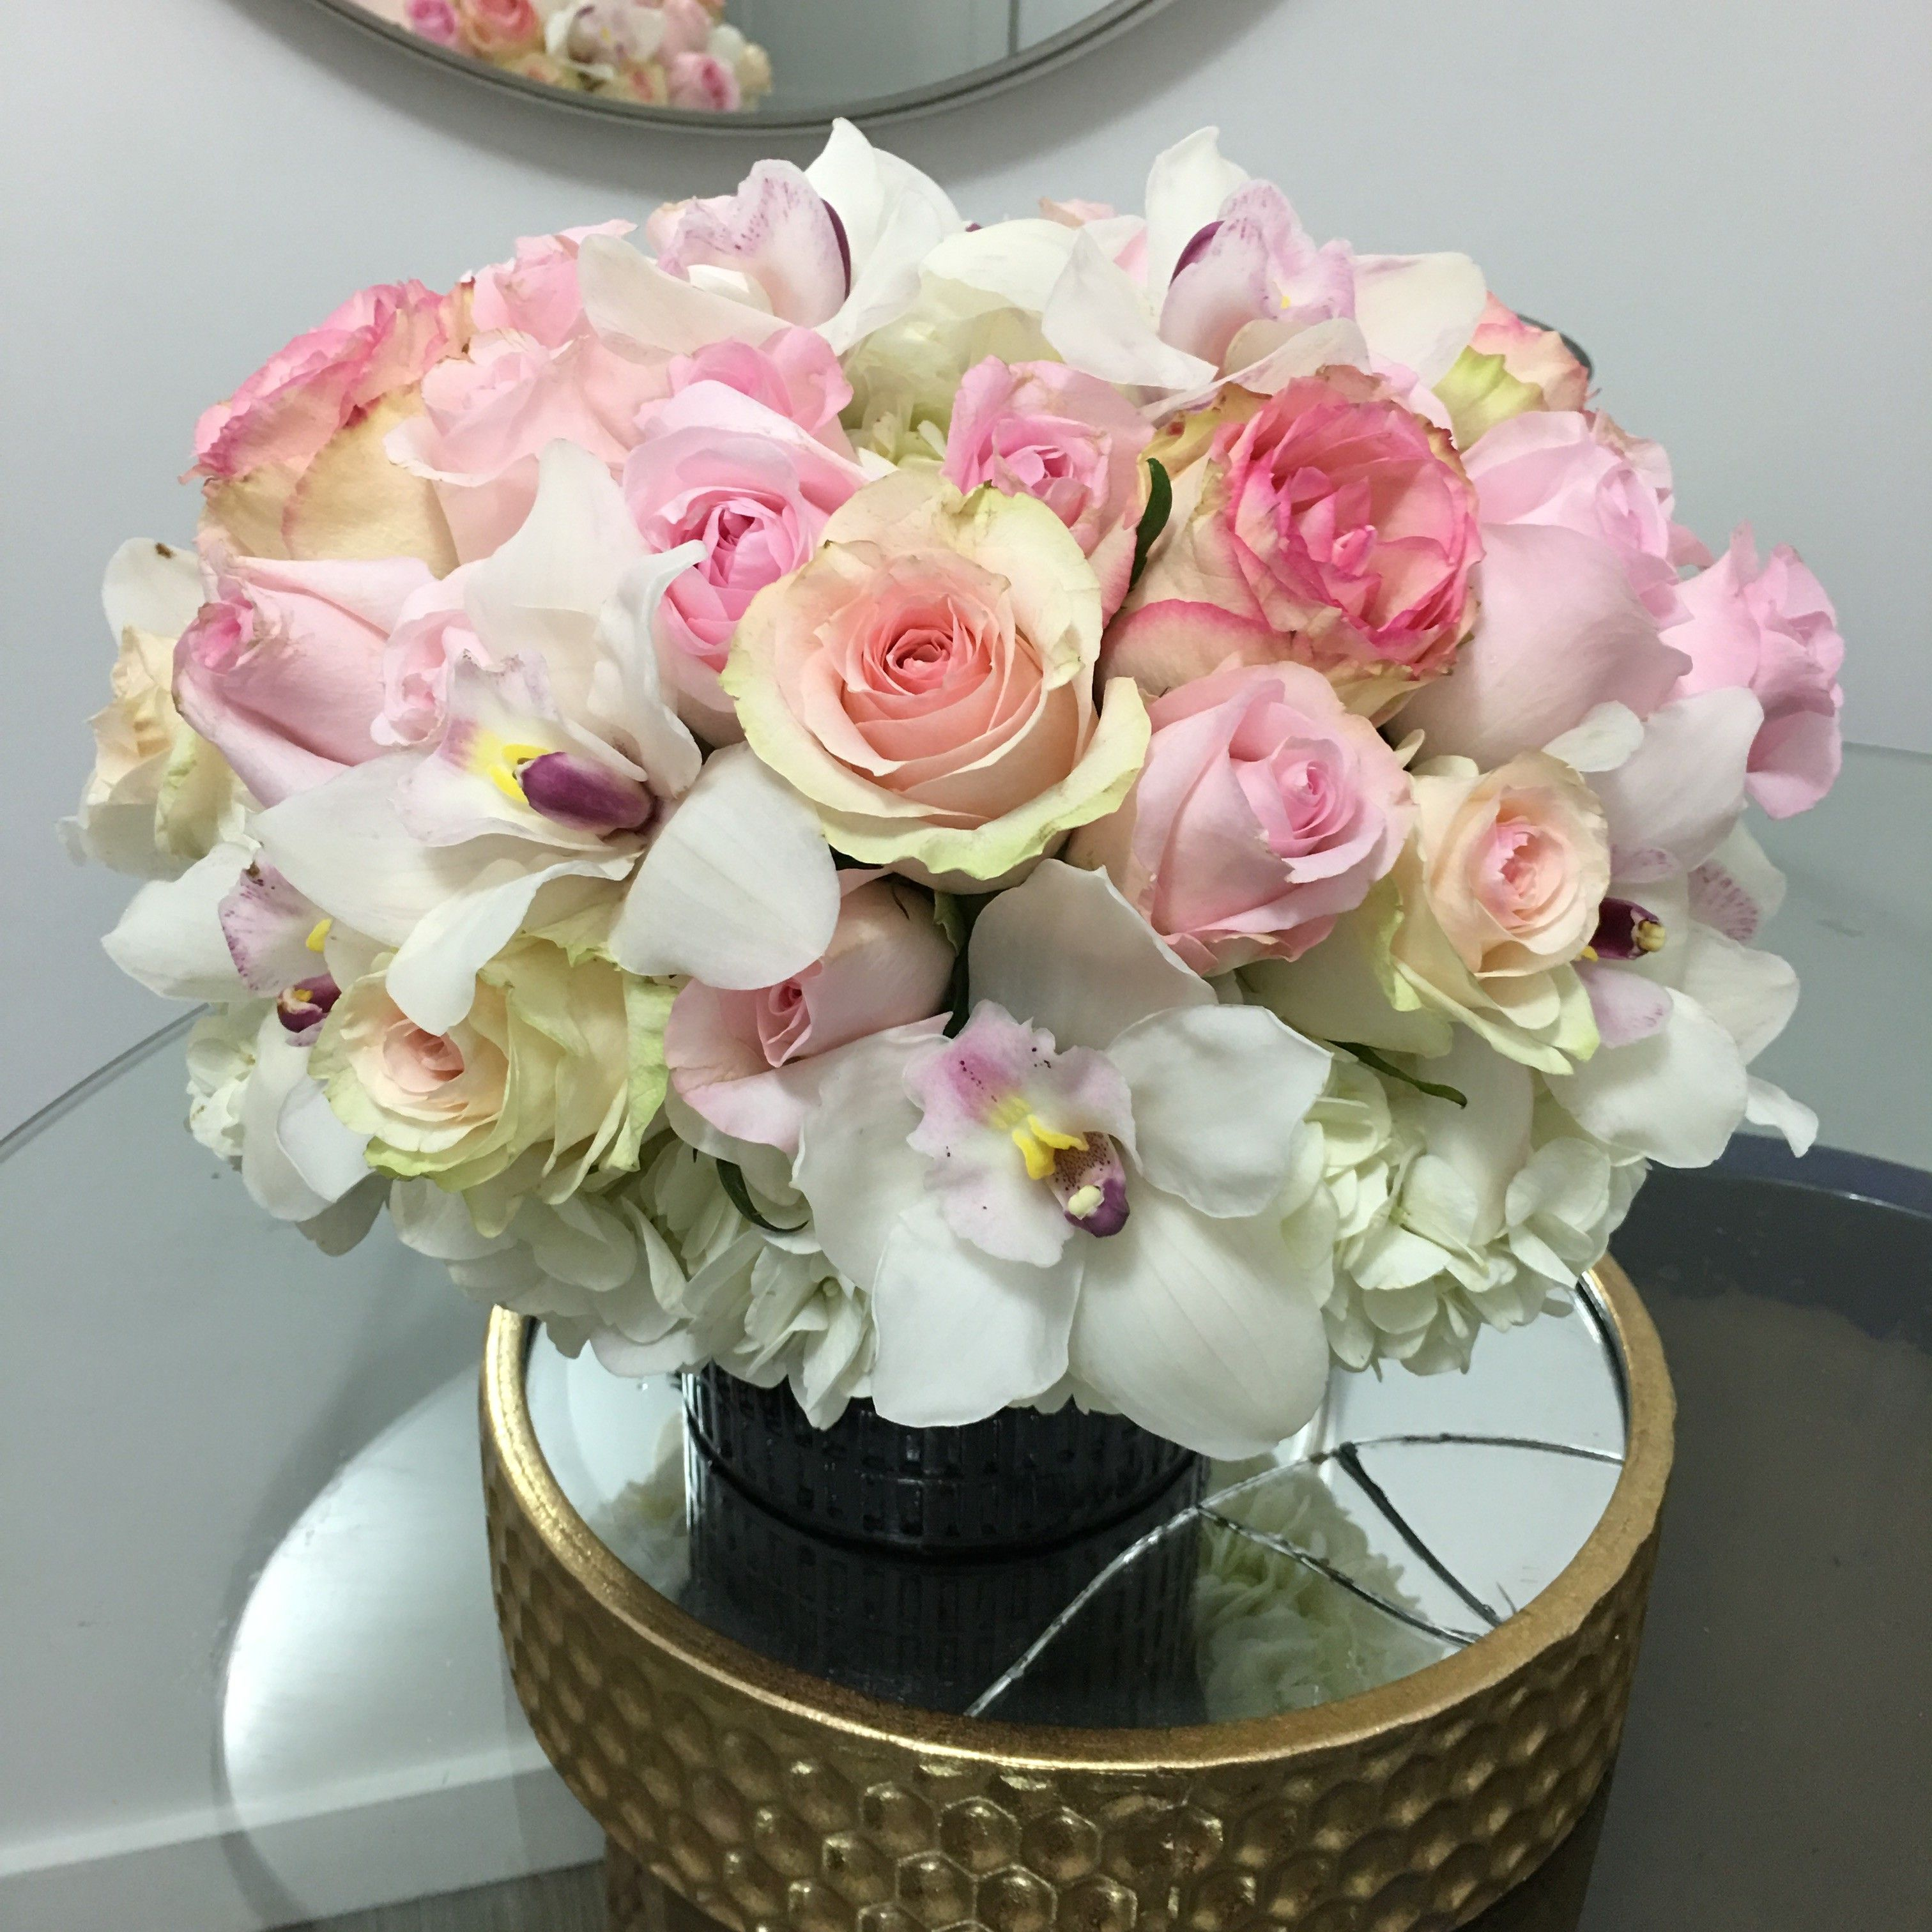 Send Softly Rose in Los Angeles, CA from LA Premier, the